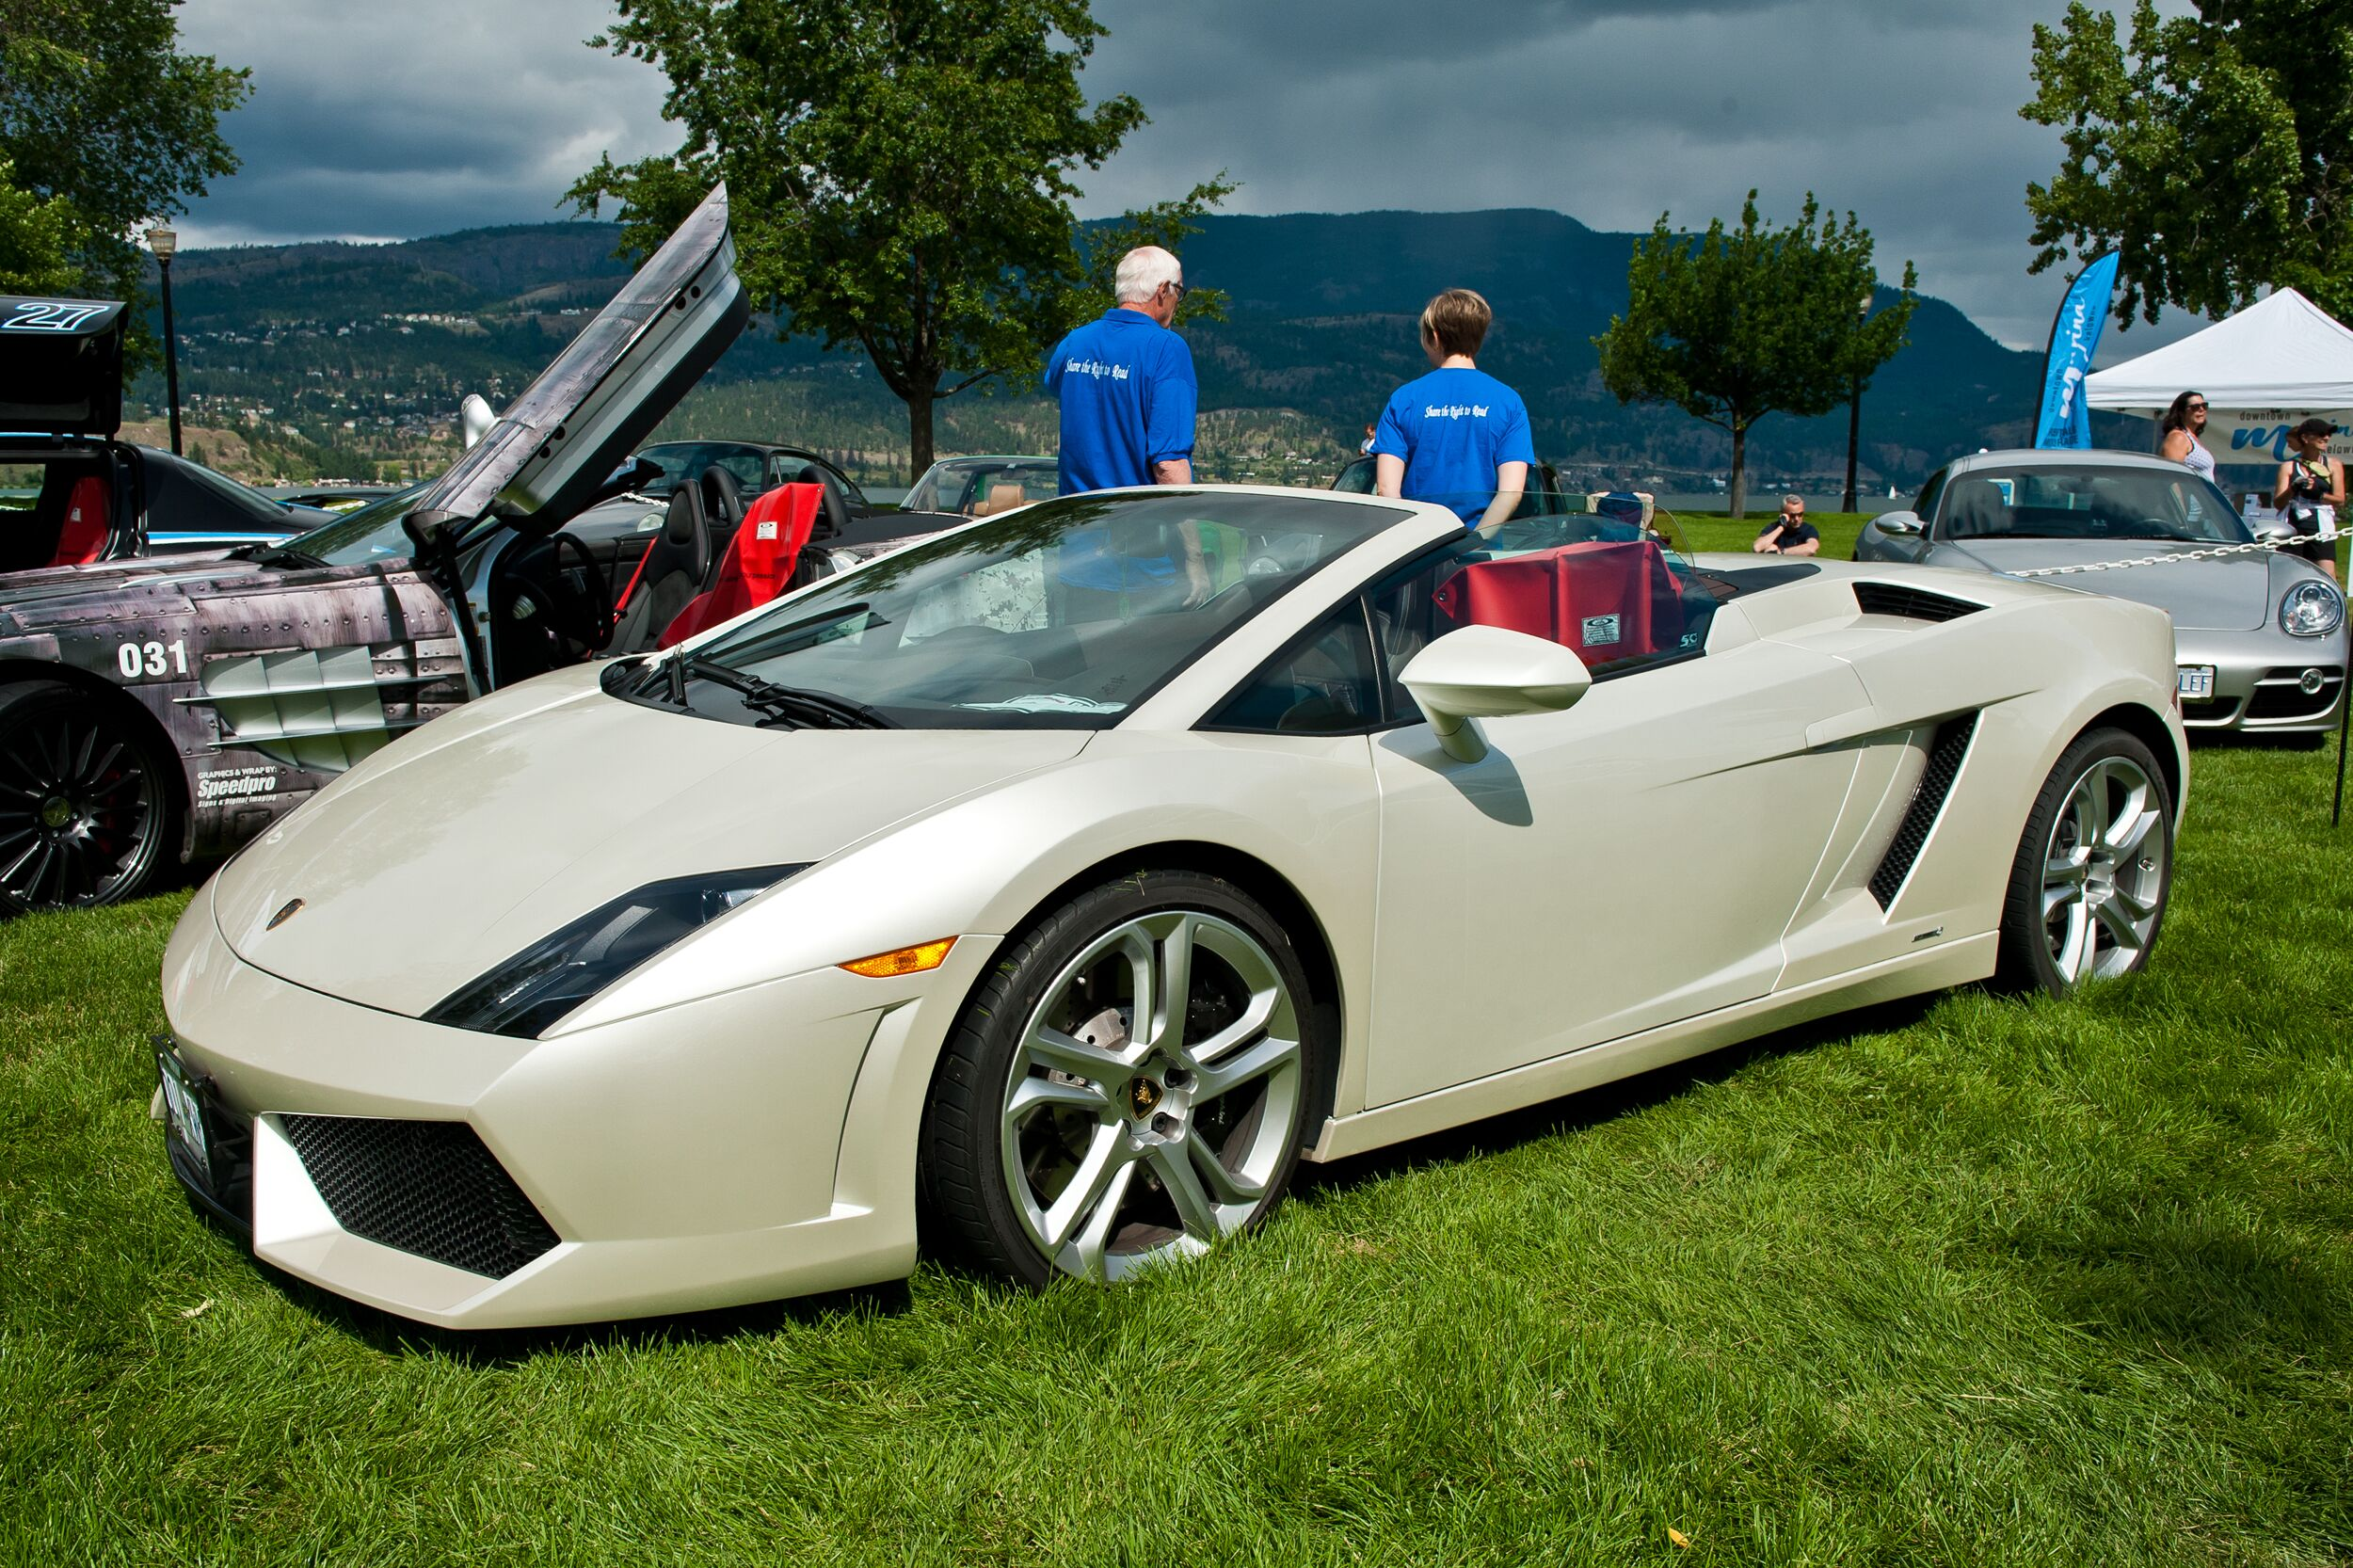 Come see us – and world cl Lamborghinis, Maseratis, Porsches and